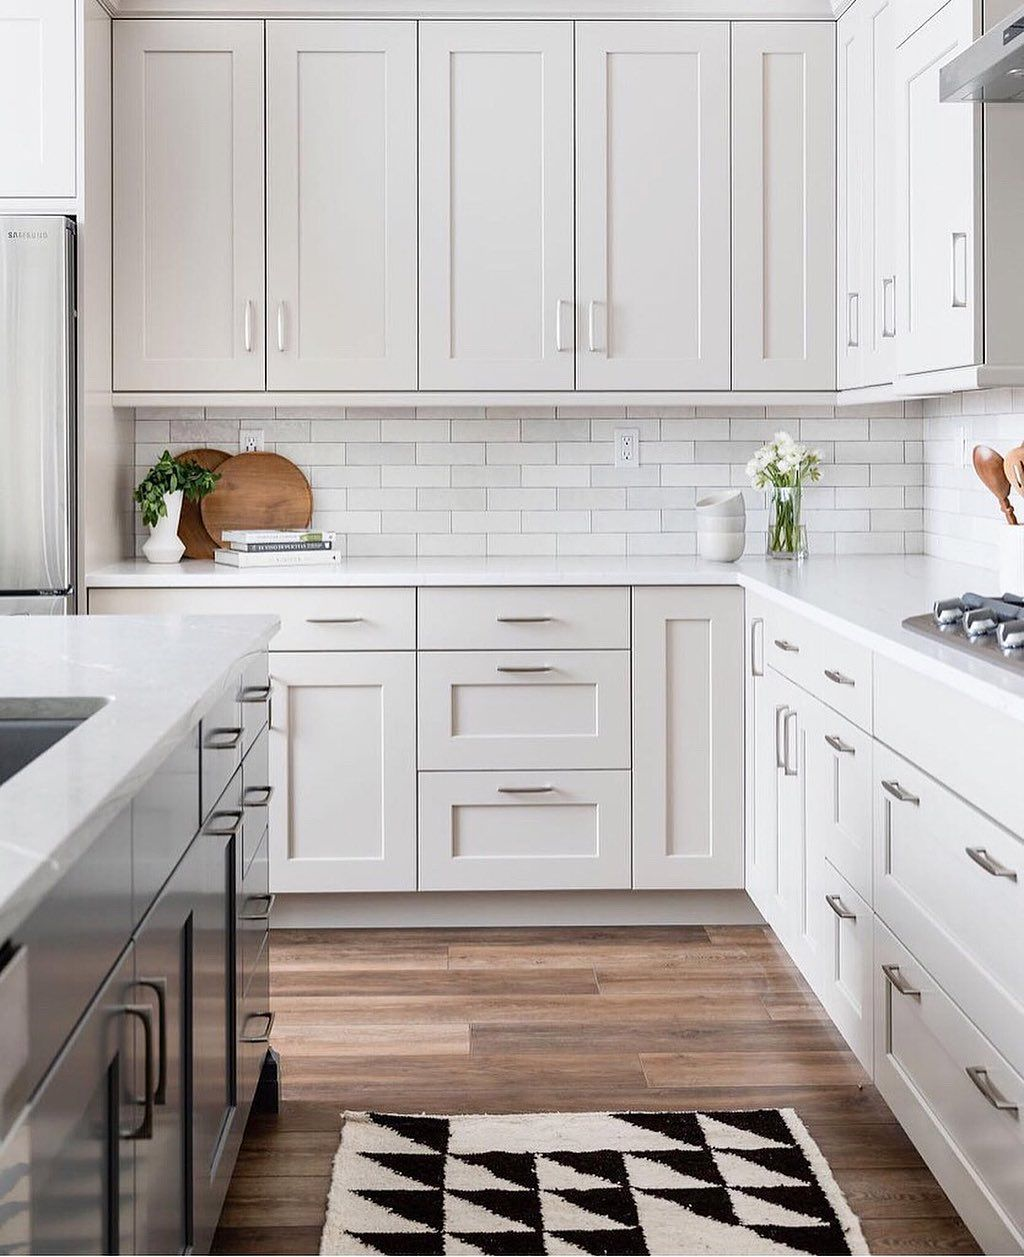 Keep The Cloe Installs Coming The Perfect Backsplash For This Kitchen Designed By Pcdsa White Kitchen Backsplash Kitchen Remodel Layout Kitchen Inspirations